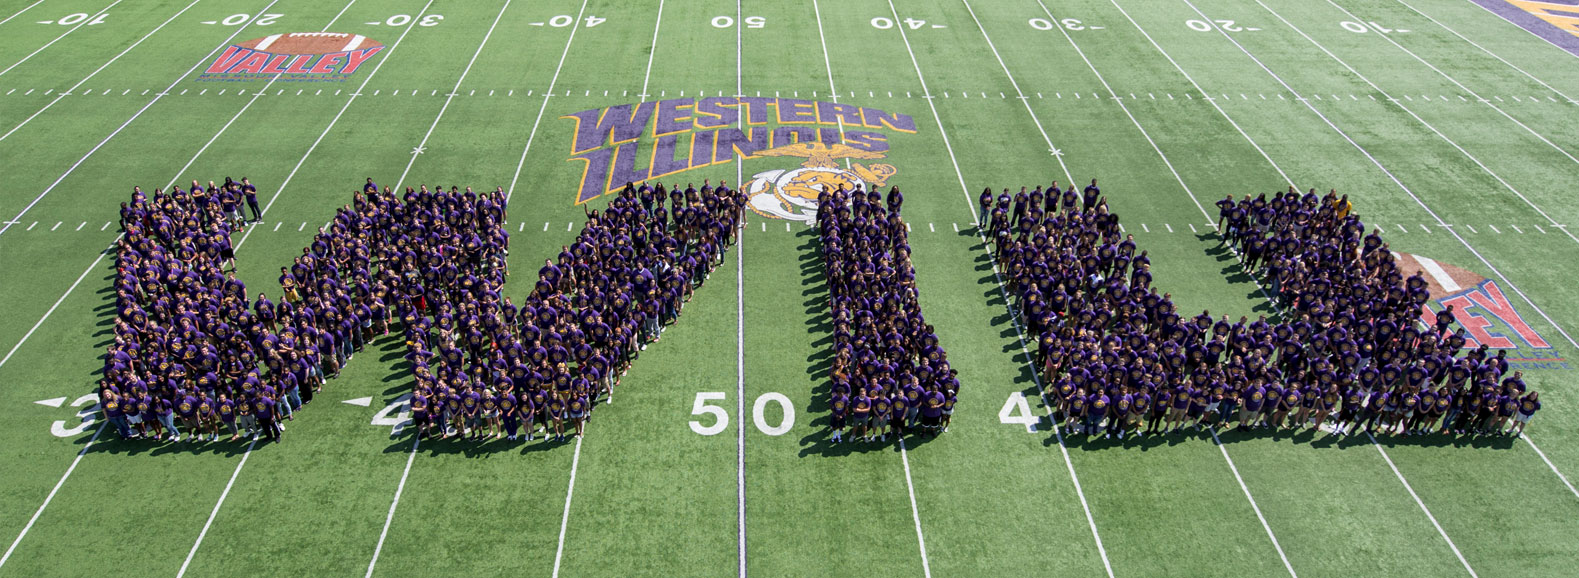 2017 Freshman Class standing in the shape of the letters WIU on the football field